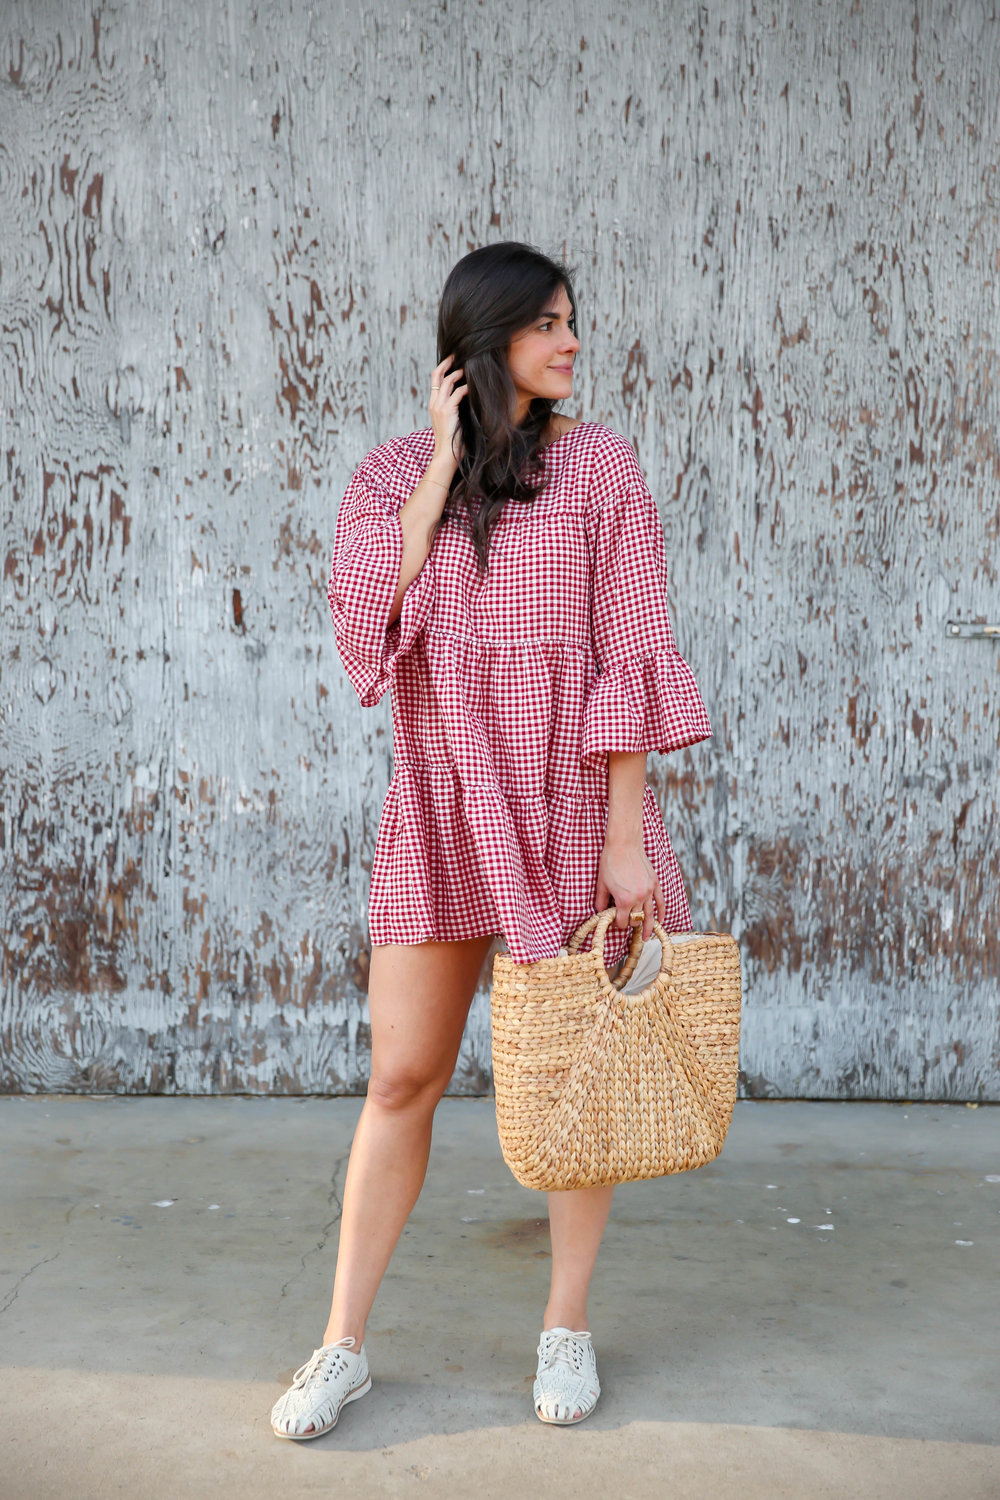 zara-gingham-mini-dress-lauren-schwaiger-style-blogger.jpg